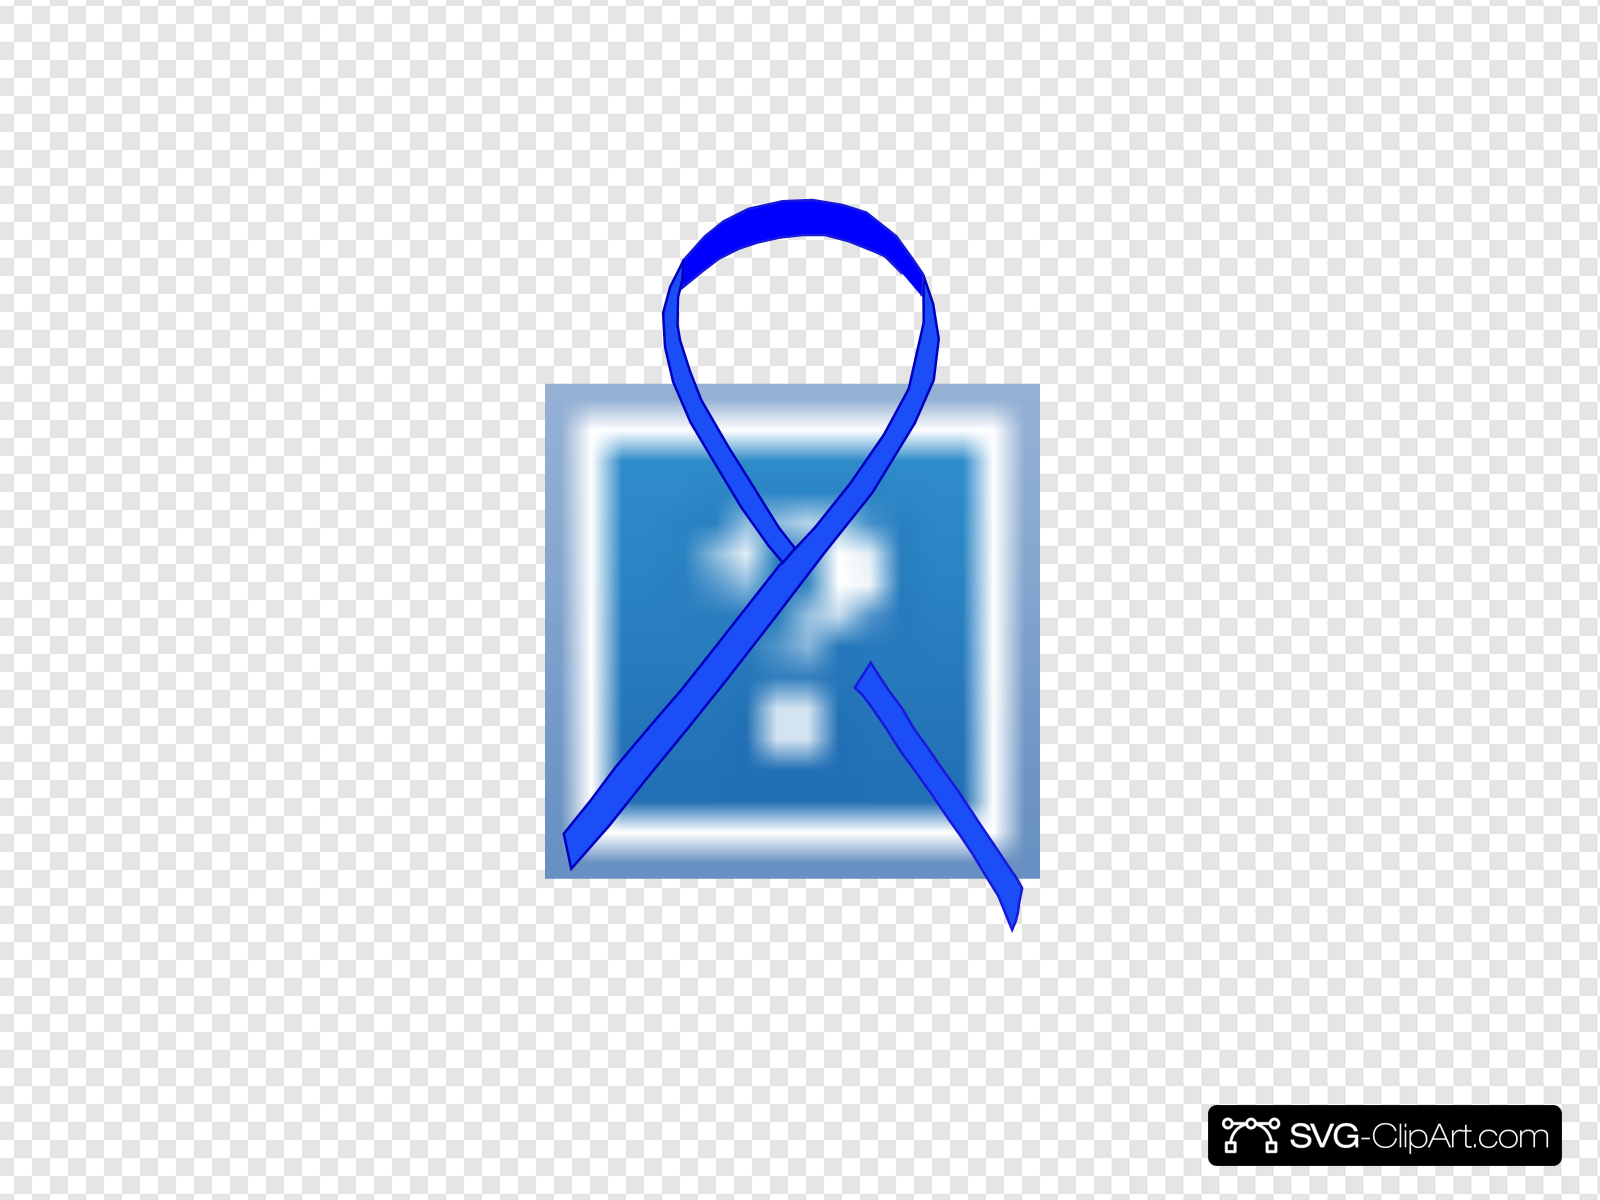 Jcp clipart png library Jcp Ribbon Clip art, Icon and SVG - SVG Clipart png library